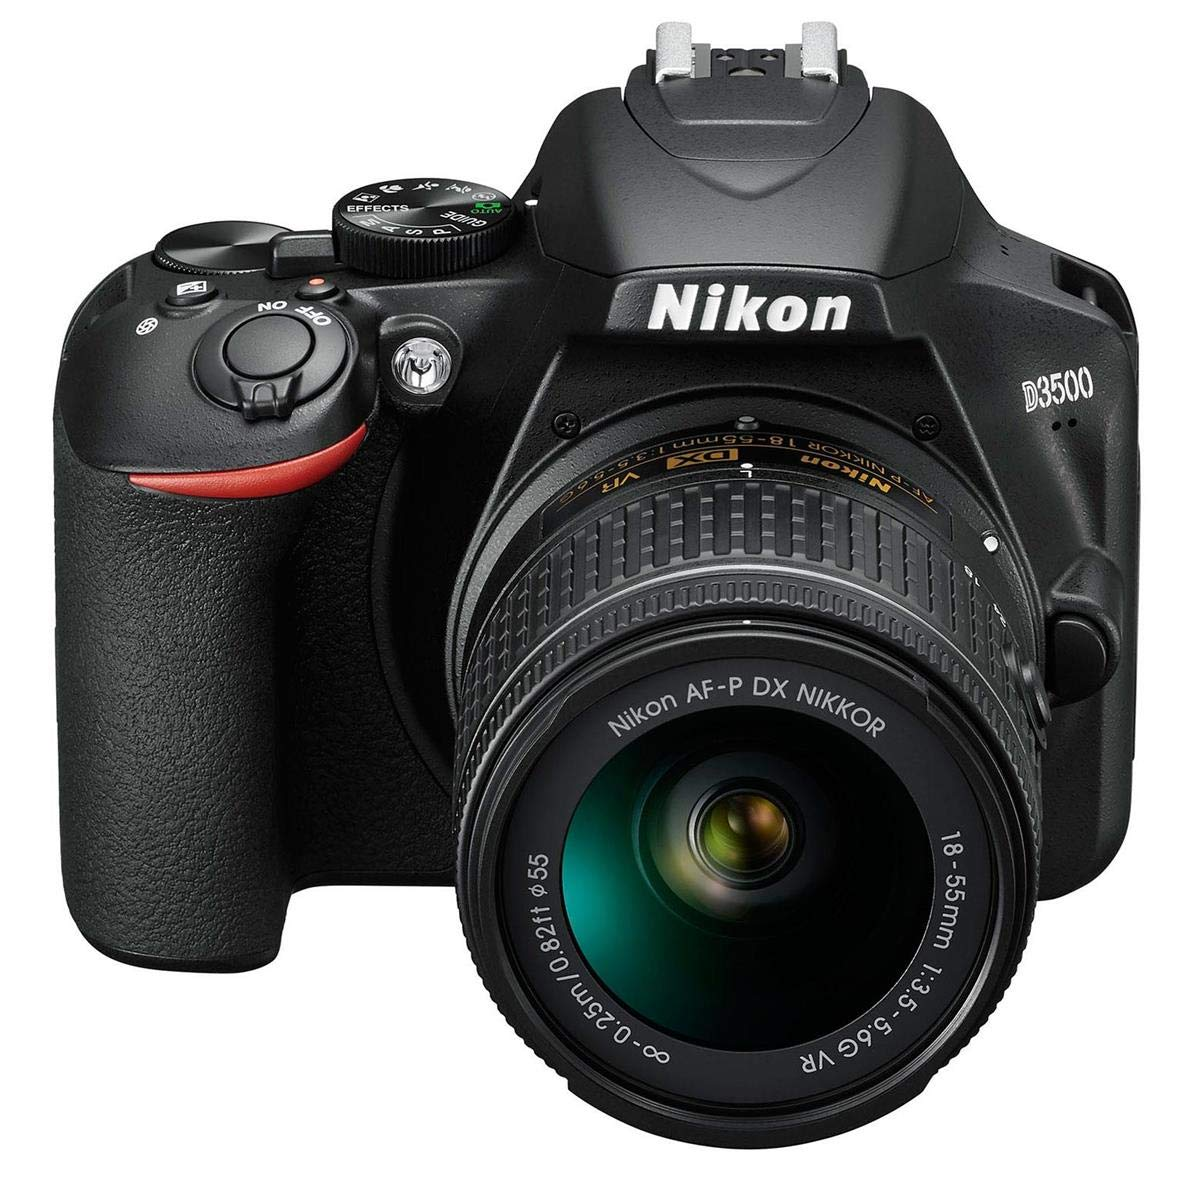 Nikon D3500 24MP DSLR Camera with AF-P DX NIKKOR 18-55mm f/3.5-5.6G VR Lens and AF-P DX NIKKOR 70-300mm f/4.5-6.3G ED Lens - Bundle with Camera Case, 16GB SDHC Card, Cleaning Kit, Card Reader by Nikon (Image #2)